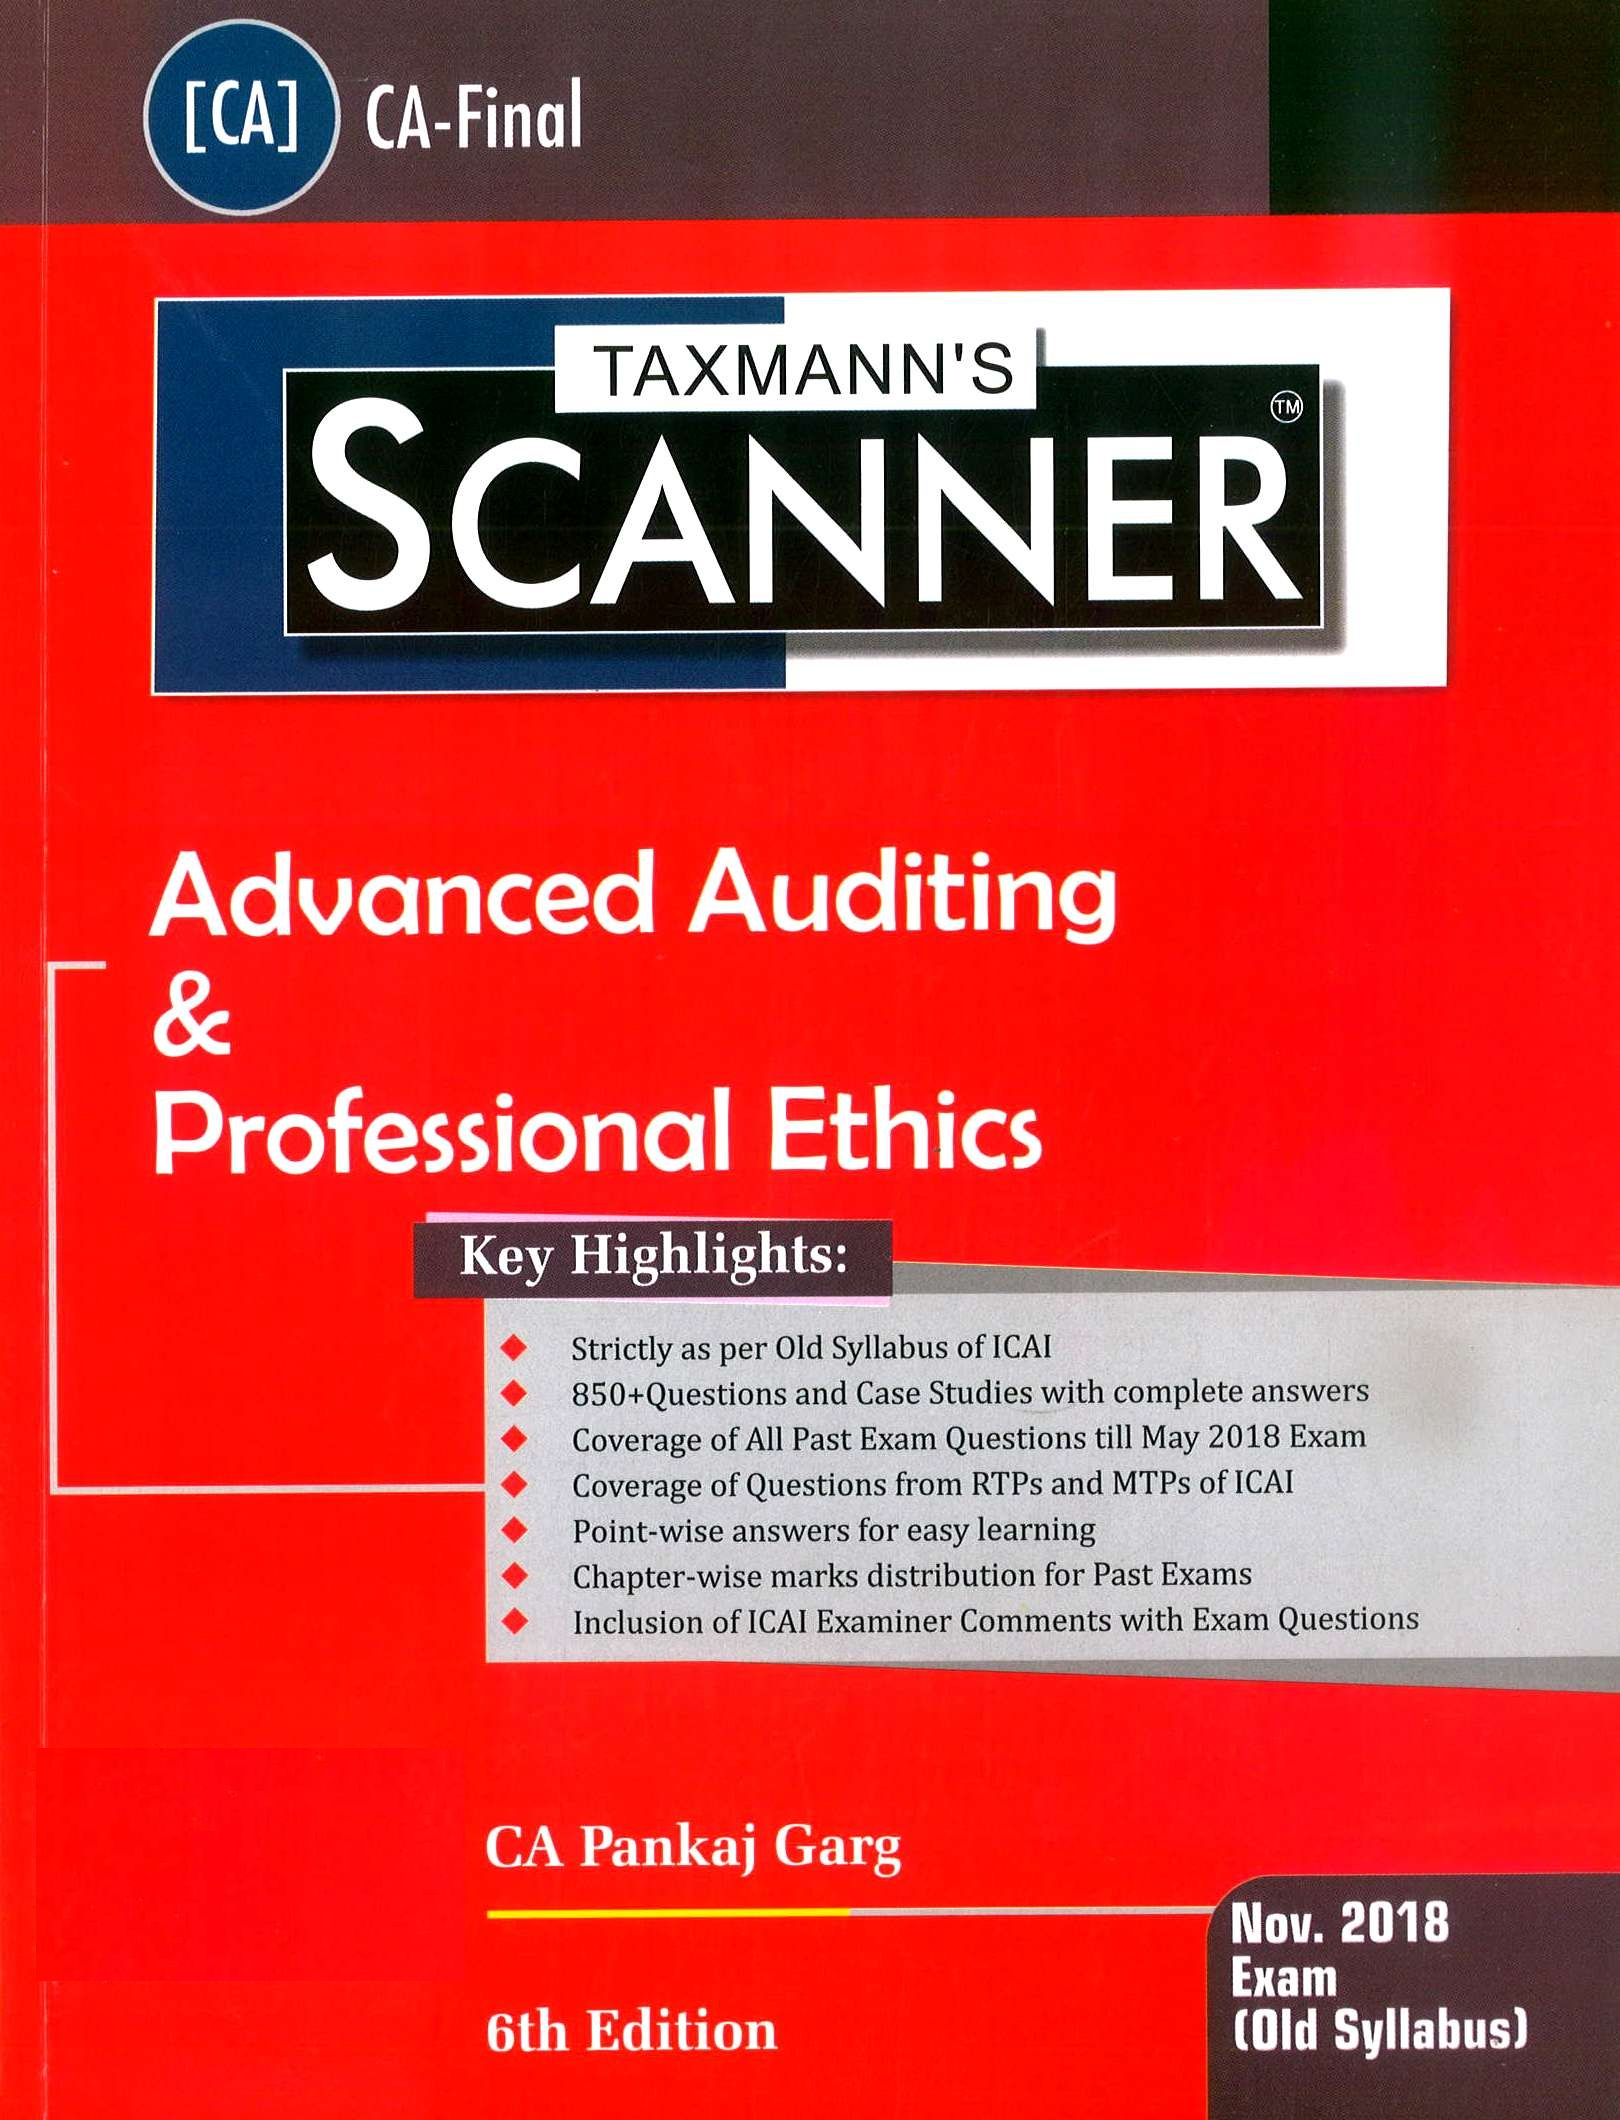 Taxmann's Scanner – Advanced Auditing & Professional Ethics (Old Syllabus) Nov.2018 Exams for CA Final by CA Pankaj Garg (Taxmann's Publishing) Edition 6th, 2018